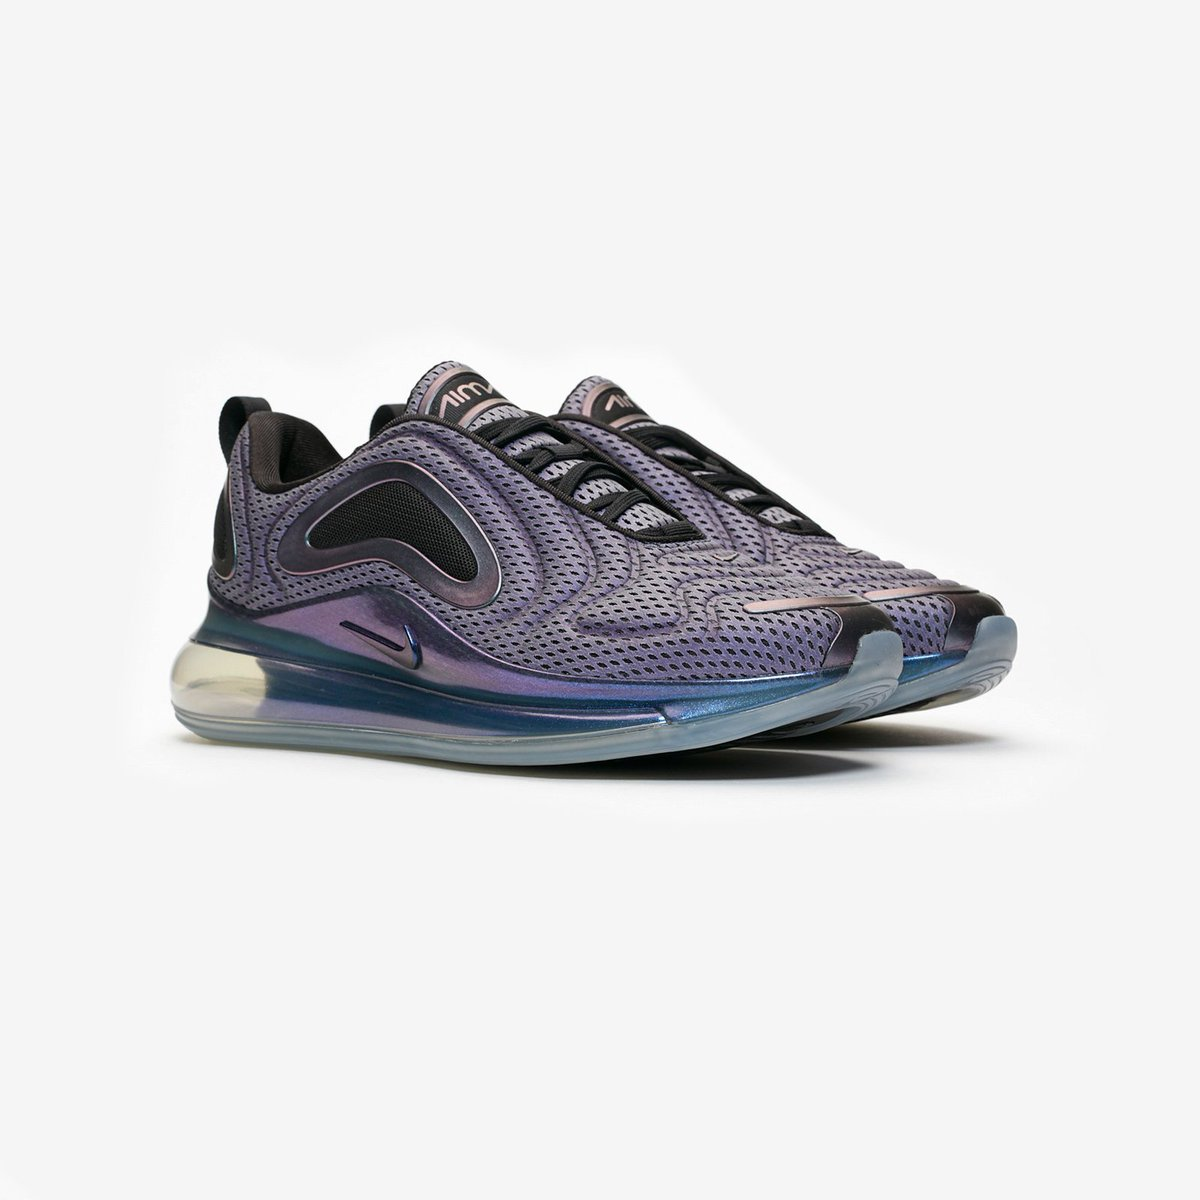 newest d968b 930c5 Releasing first come, first served on Feb 1st  SNS Paris, London, Berlin   Stockholm. nikesportswear Nike AirMax720  NikeAM720pic.twitter.com1FlsoSFKYu